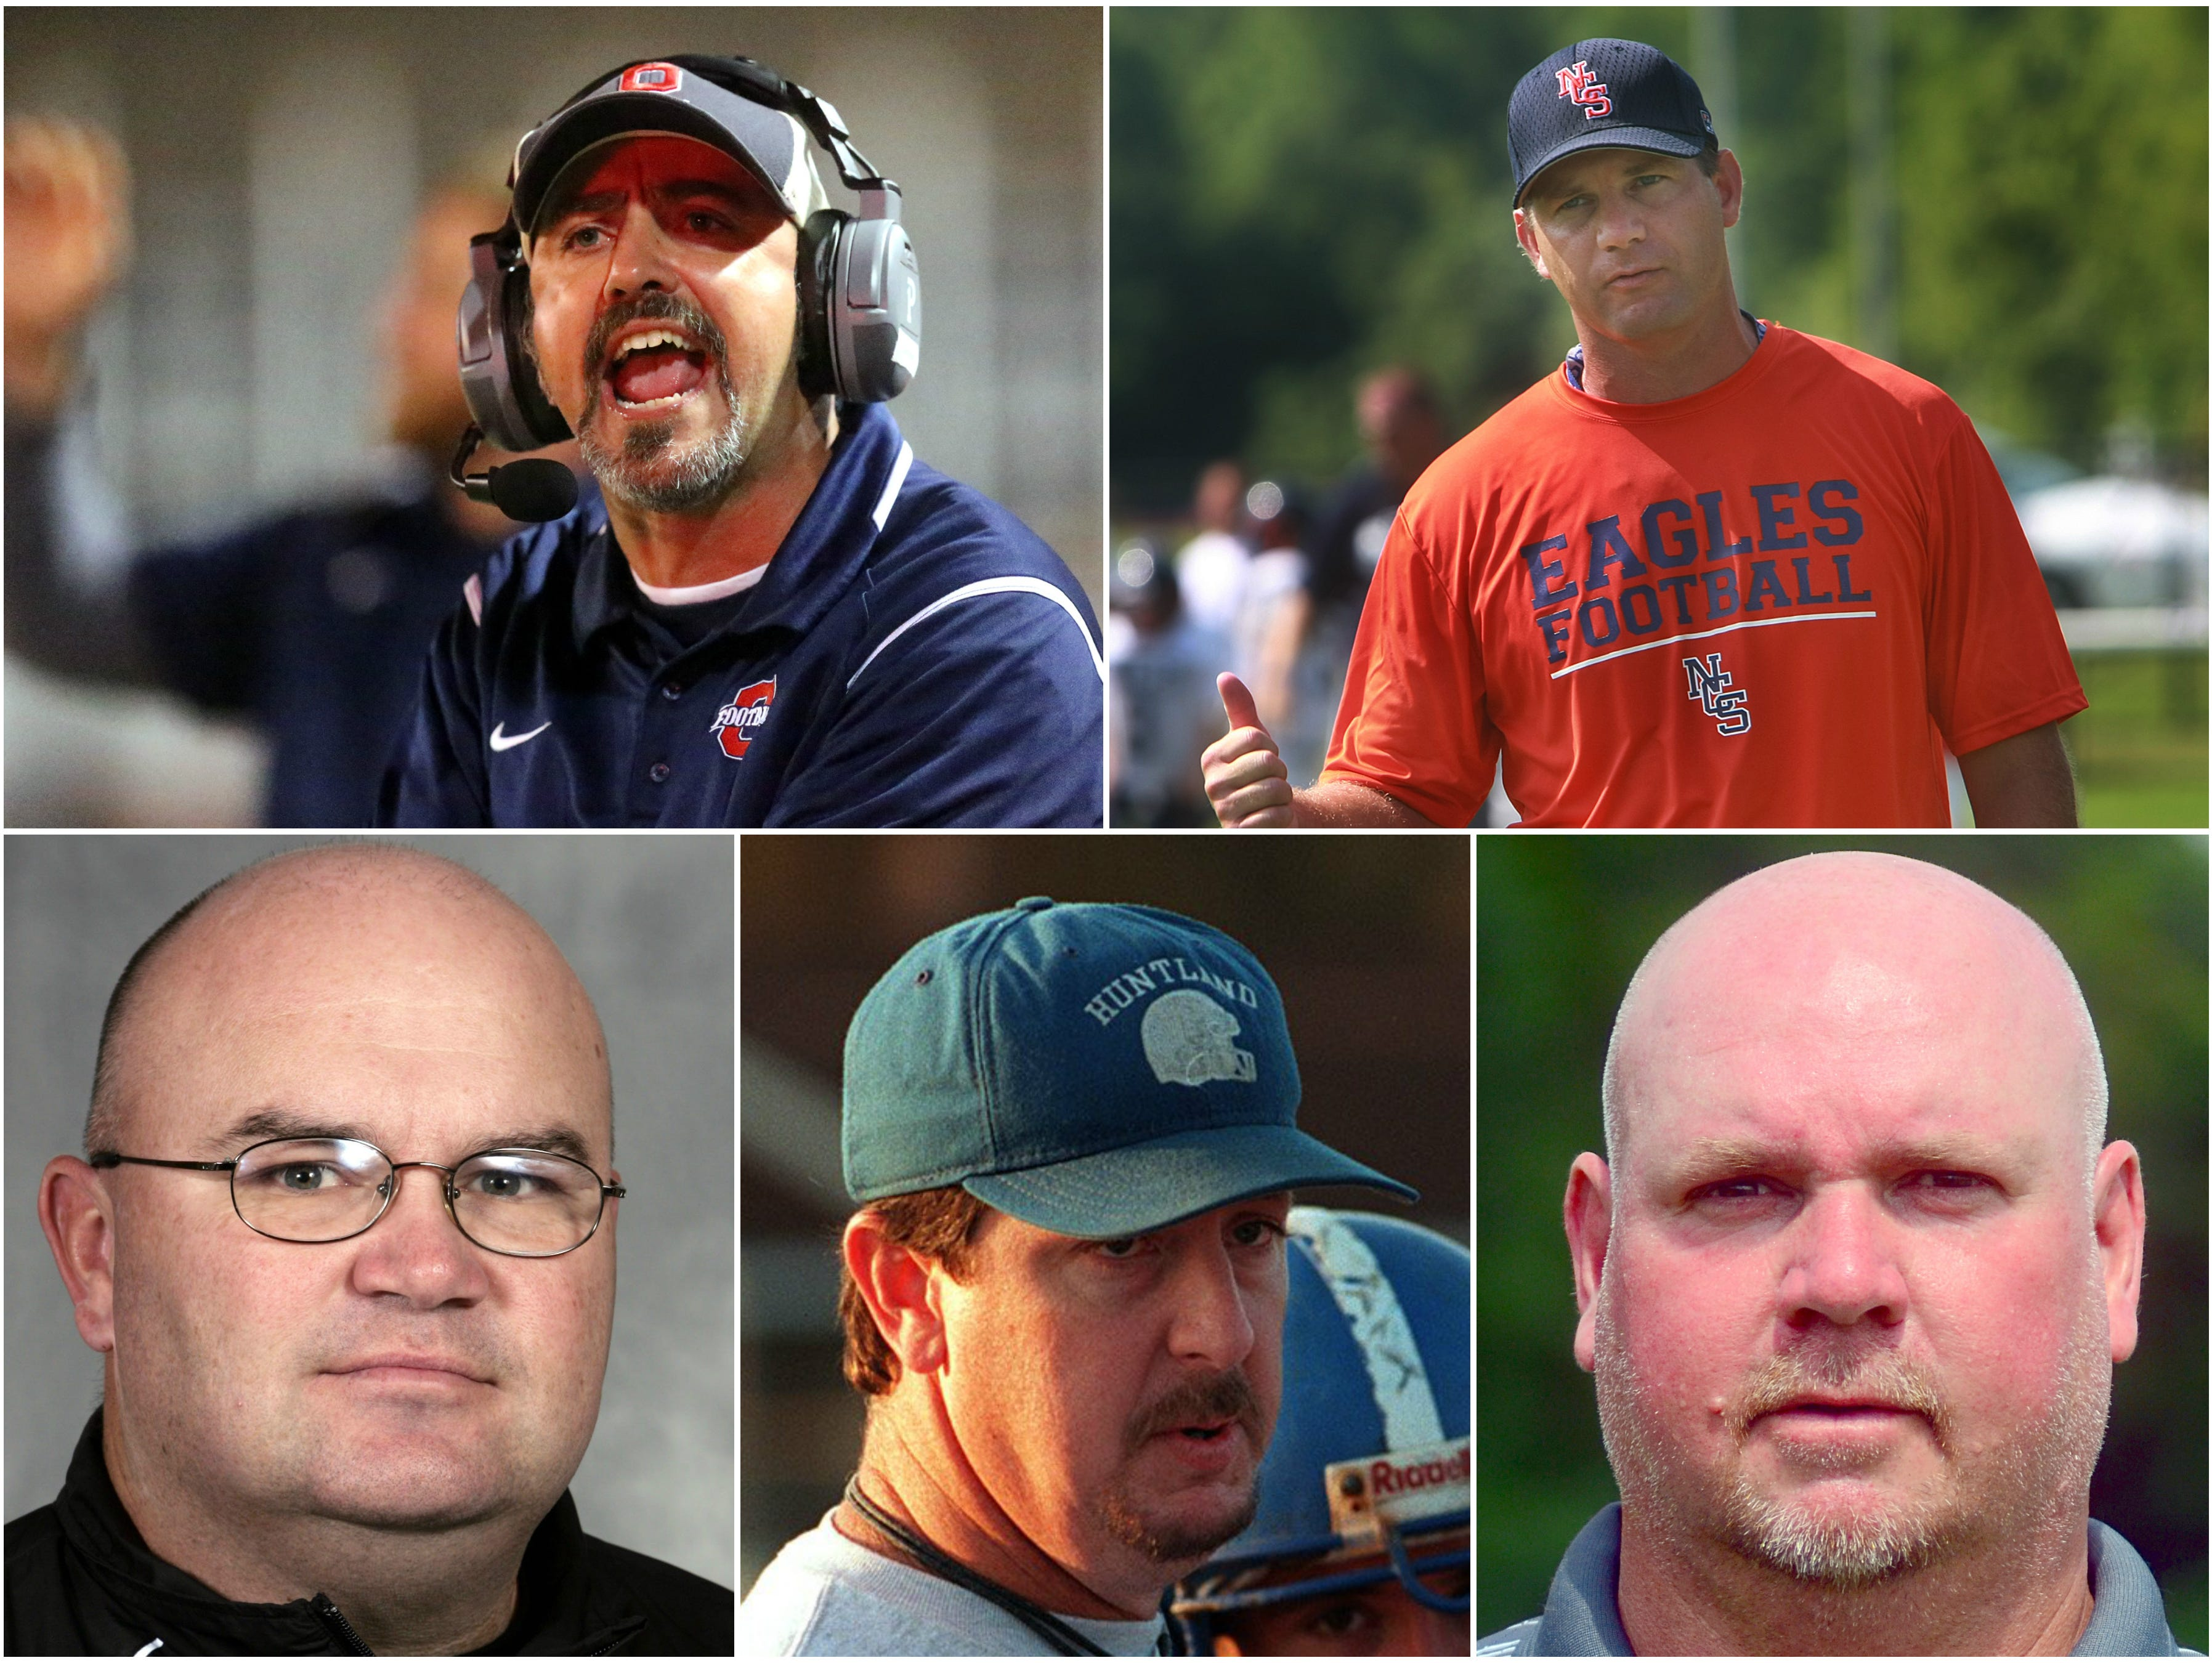 C – Century mark. Five coaches – Beech's Anthony Crabtree (94-40), Huntland's Bob Robertson (94-107), Giles County's David O'Connor (93-32), Nashville Christian's Jeff Brothers (92-62) and Oakland's Kevin Creasy (91-14) – are within reach of their 100th career victory.